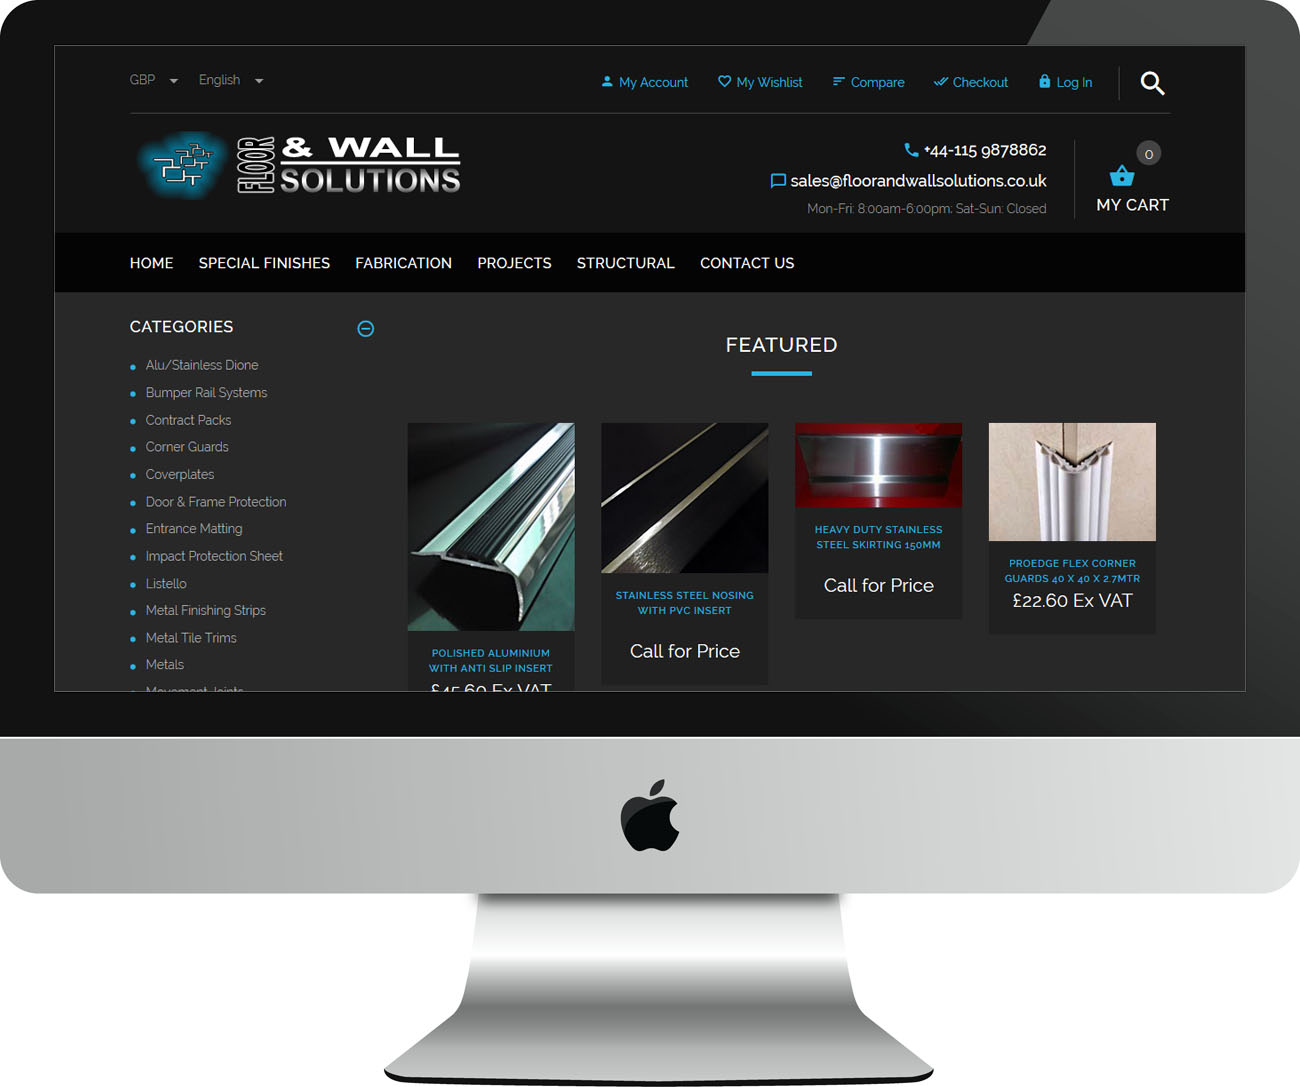 Web Design Project Floor and Wall Solutions - iMac View